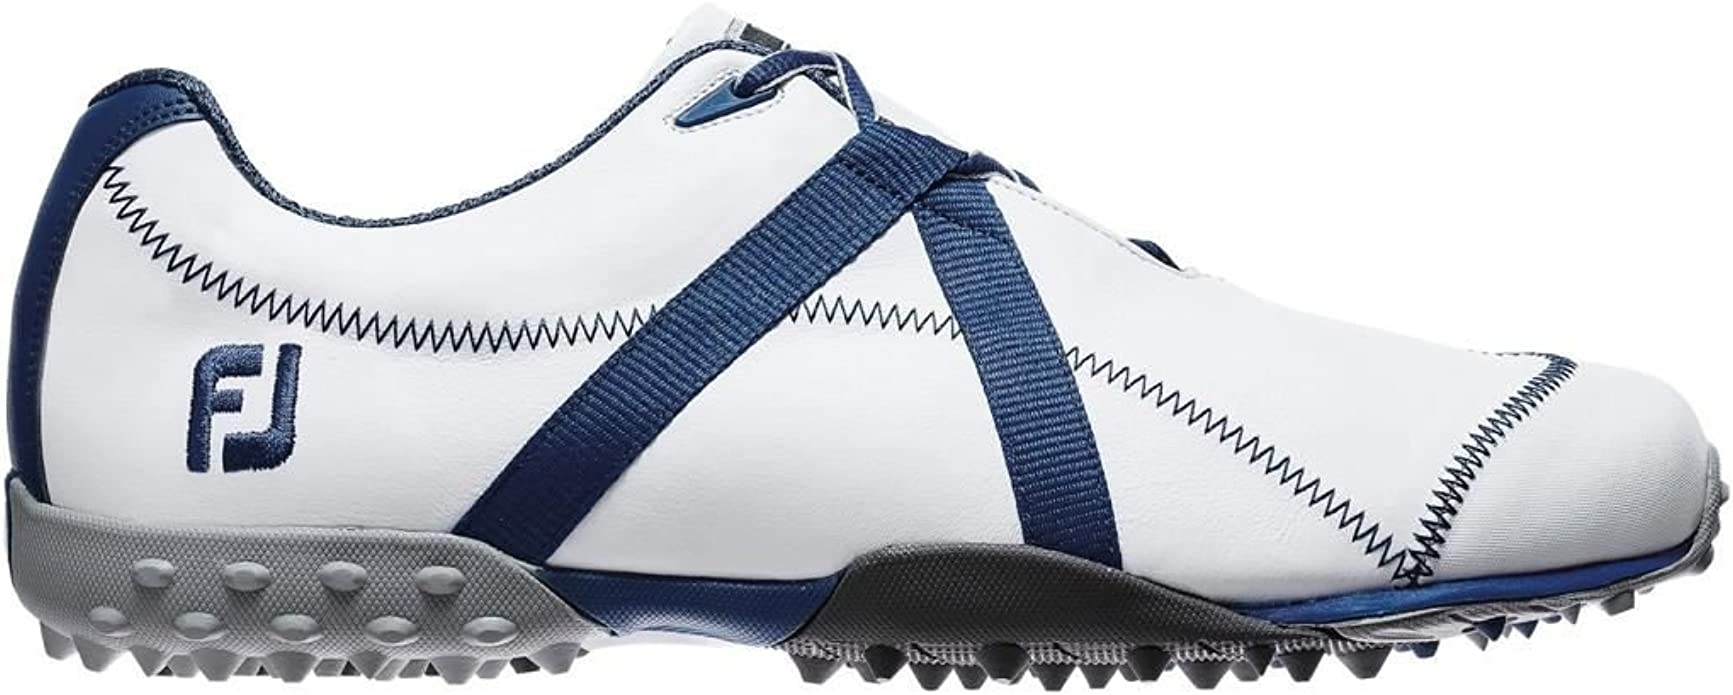 Sale Footjoy M Project Spikeless Leather Mens Golf Shoes White Blue 10 5 Uk Amazon Co Uk Shoes Bags